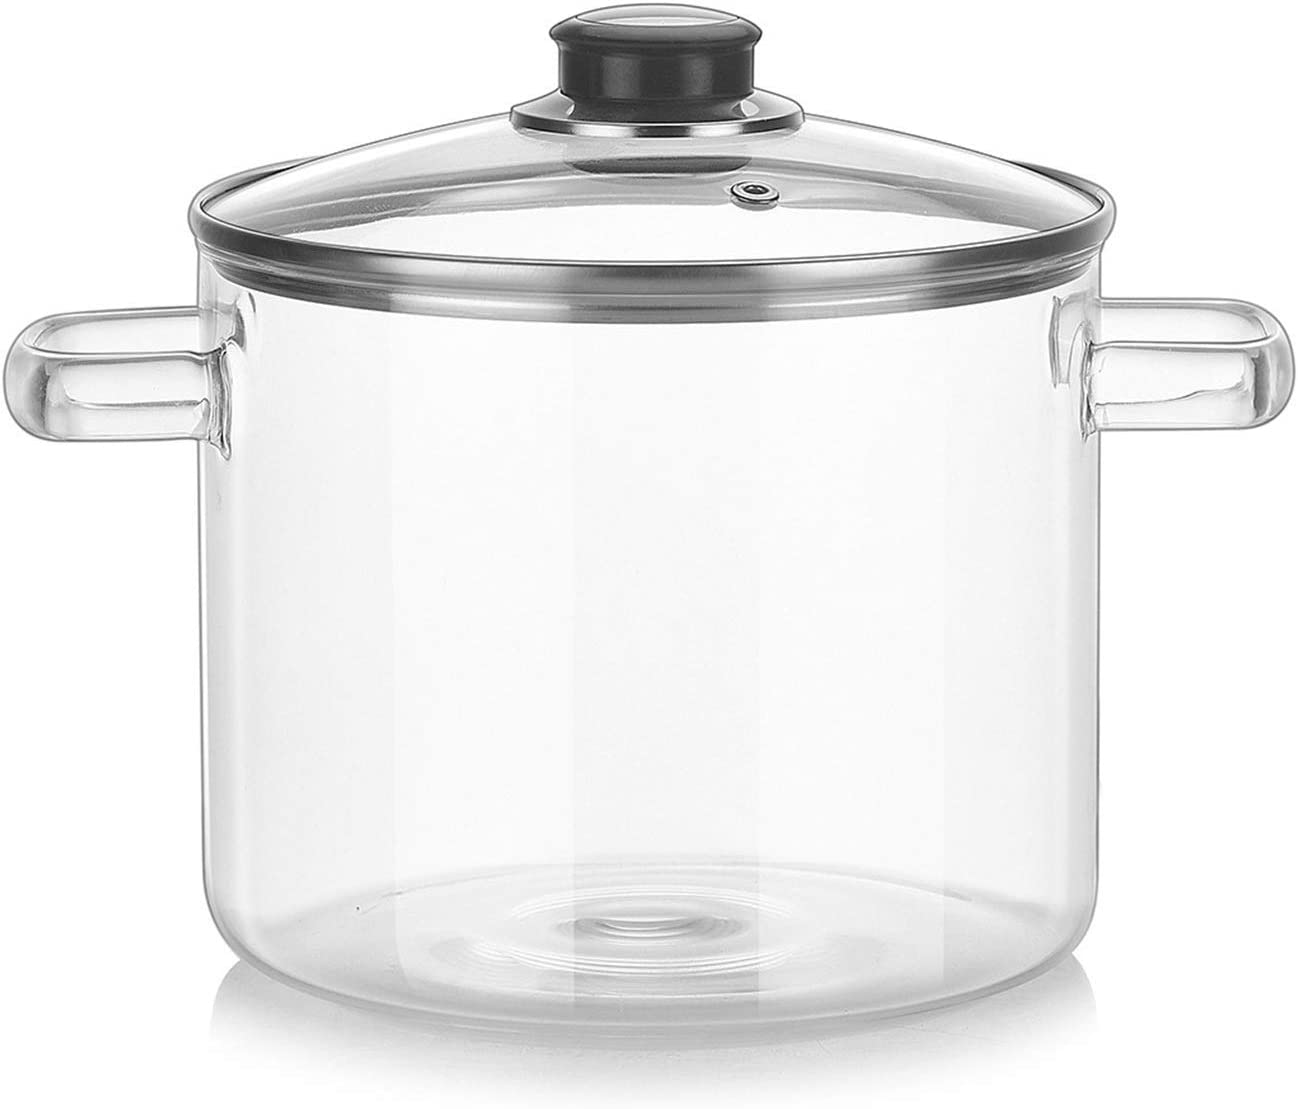 Soup Pot Household Glass Saucepan Transparent Bo Max 64% Beauty products OFF